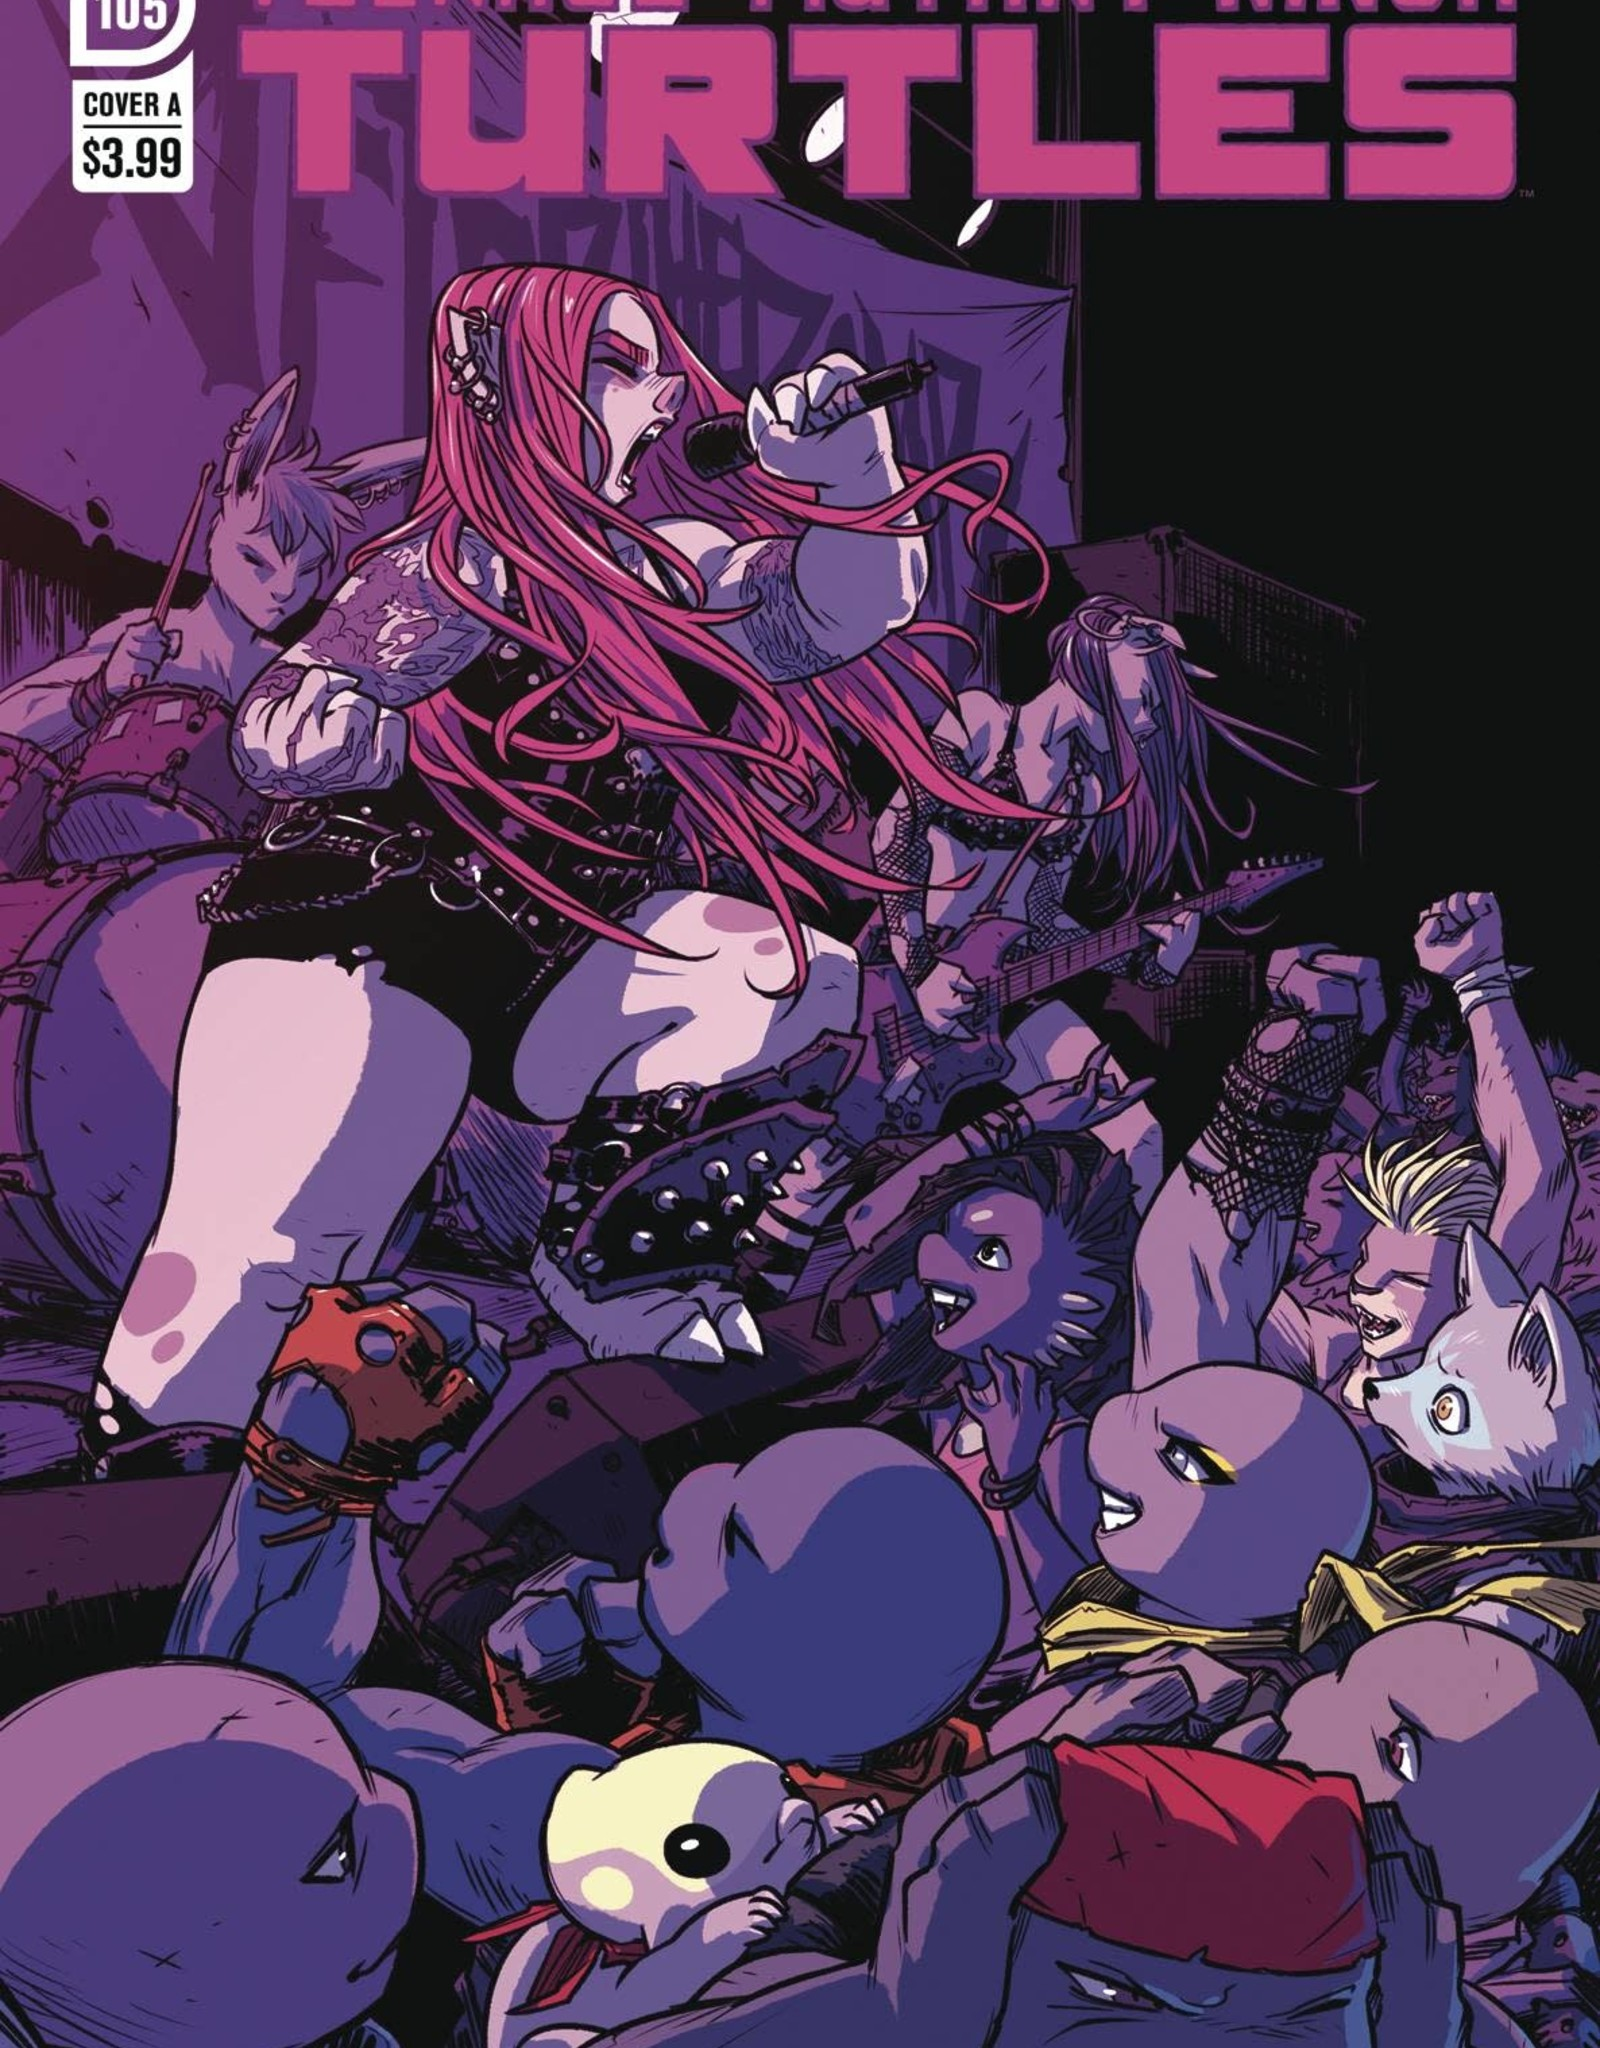 IDW PUBLISHING TMNT ONGOING #105 CVR A CAMPBELL